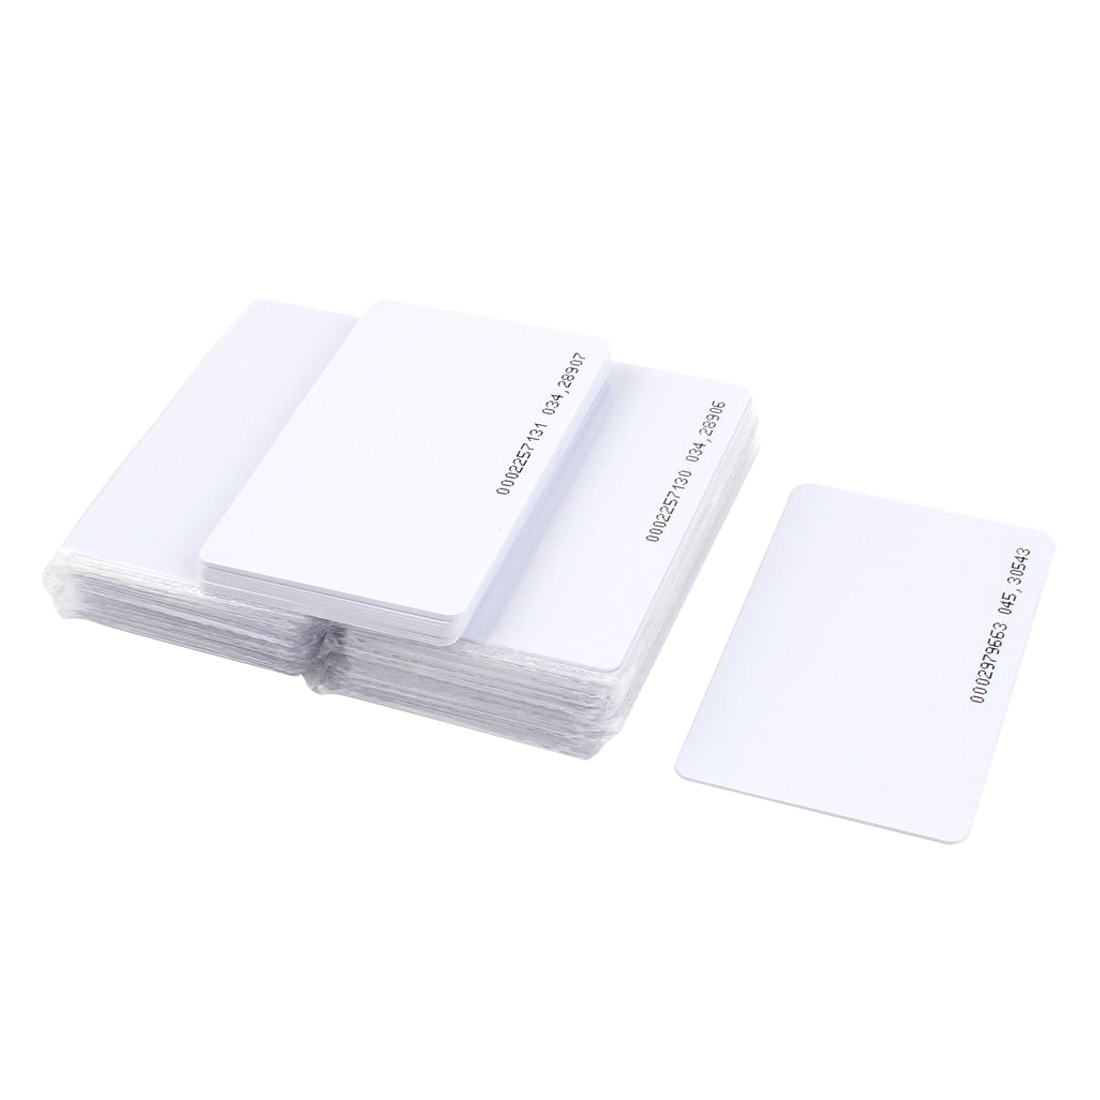 MOOL 50 Pieces Intelligent Proximity EM4100 125kHz RFID Proximity Card Entry Empty ID Access